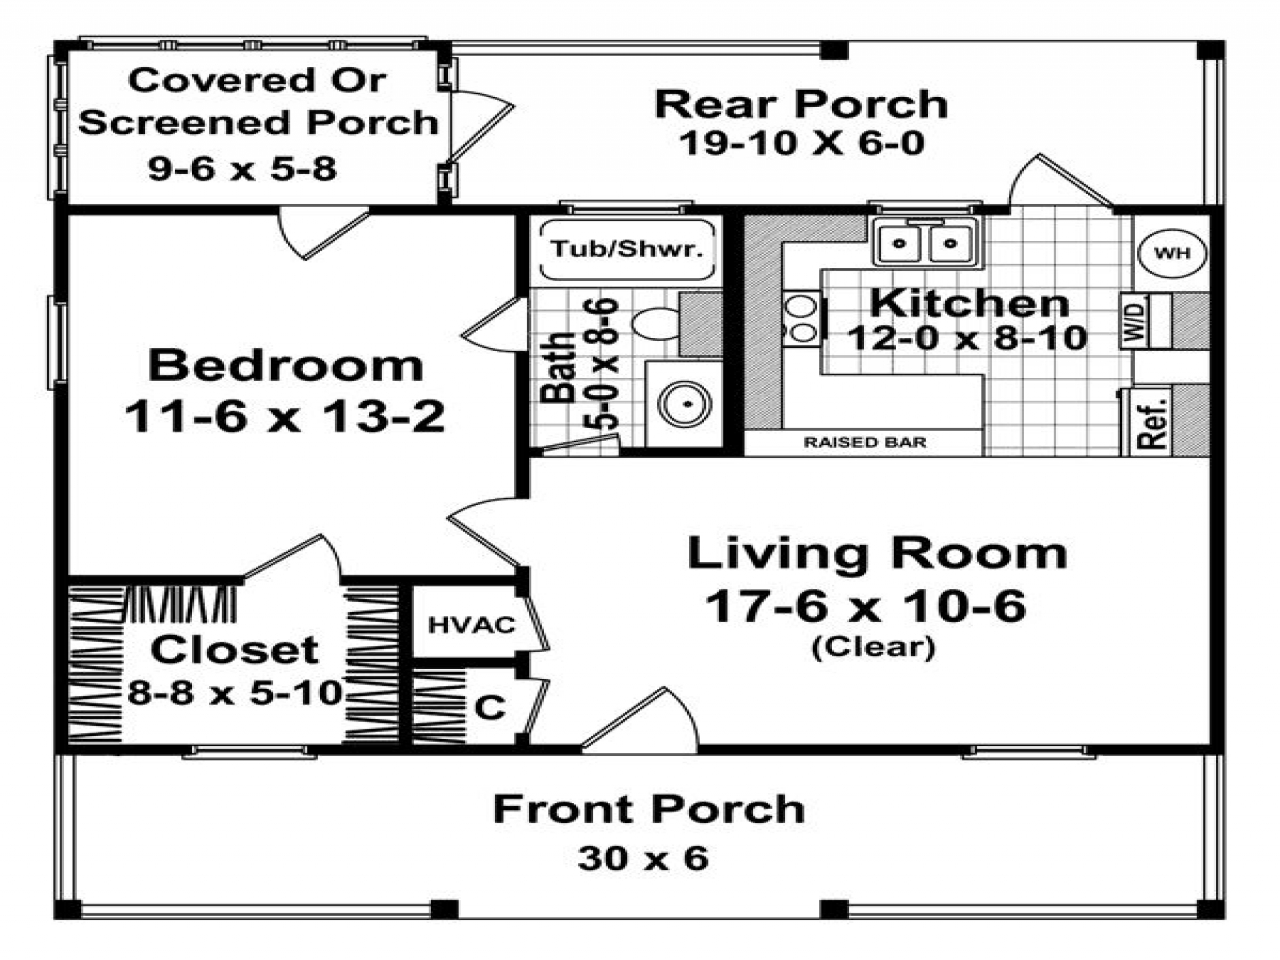 Small House Plans Under 600 Sq Ft House Plan Square Feet ... on 4000 sq ft ranch house plans, 1400 sq ft ranch house plans, 1500 sq ft ranch house plans, 700 sq ft ranch house plans, 3000 sq ft ranch house plans, 1000 sq ft ranch house plans, 5000 sq ft ranch house plans, 2400 sq ft ranch house plans, 3500 sq ft ranch house plans, 1100 sq ft ranch house plans, 1700 sq ft ranch house plans, 2000 sq ft ranch house plans, 2500 sq ft ranch house plans, 1600 sq ft ranch house plans, 1800 sq ft ranch house plans, 800 sq ft ranch house plans, 1900 sq ft ranch house plans, 1200 sq ft ranch house plans, 2200 sq ft ranch house plans, 1300 sq ft ranch house plans,